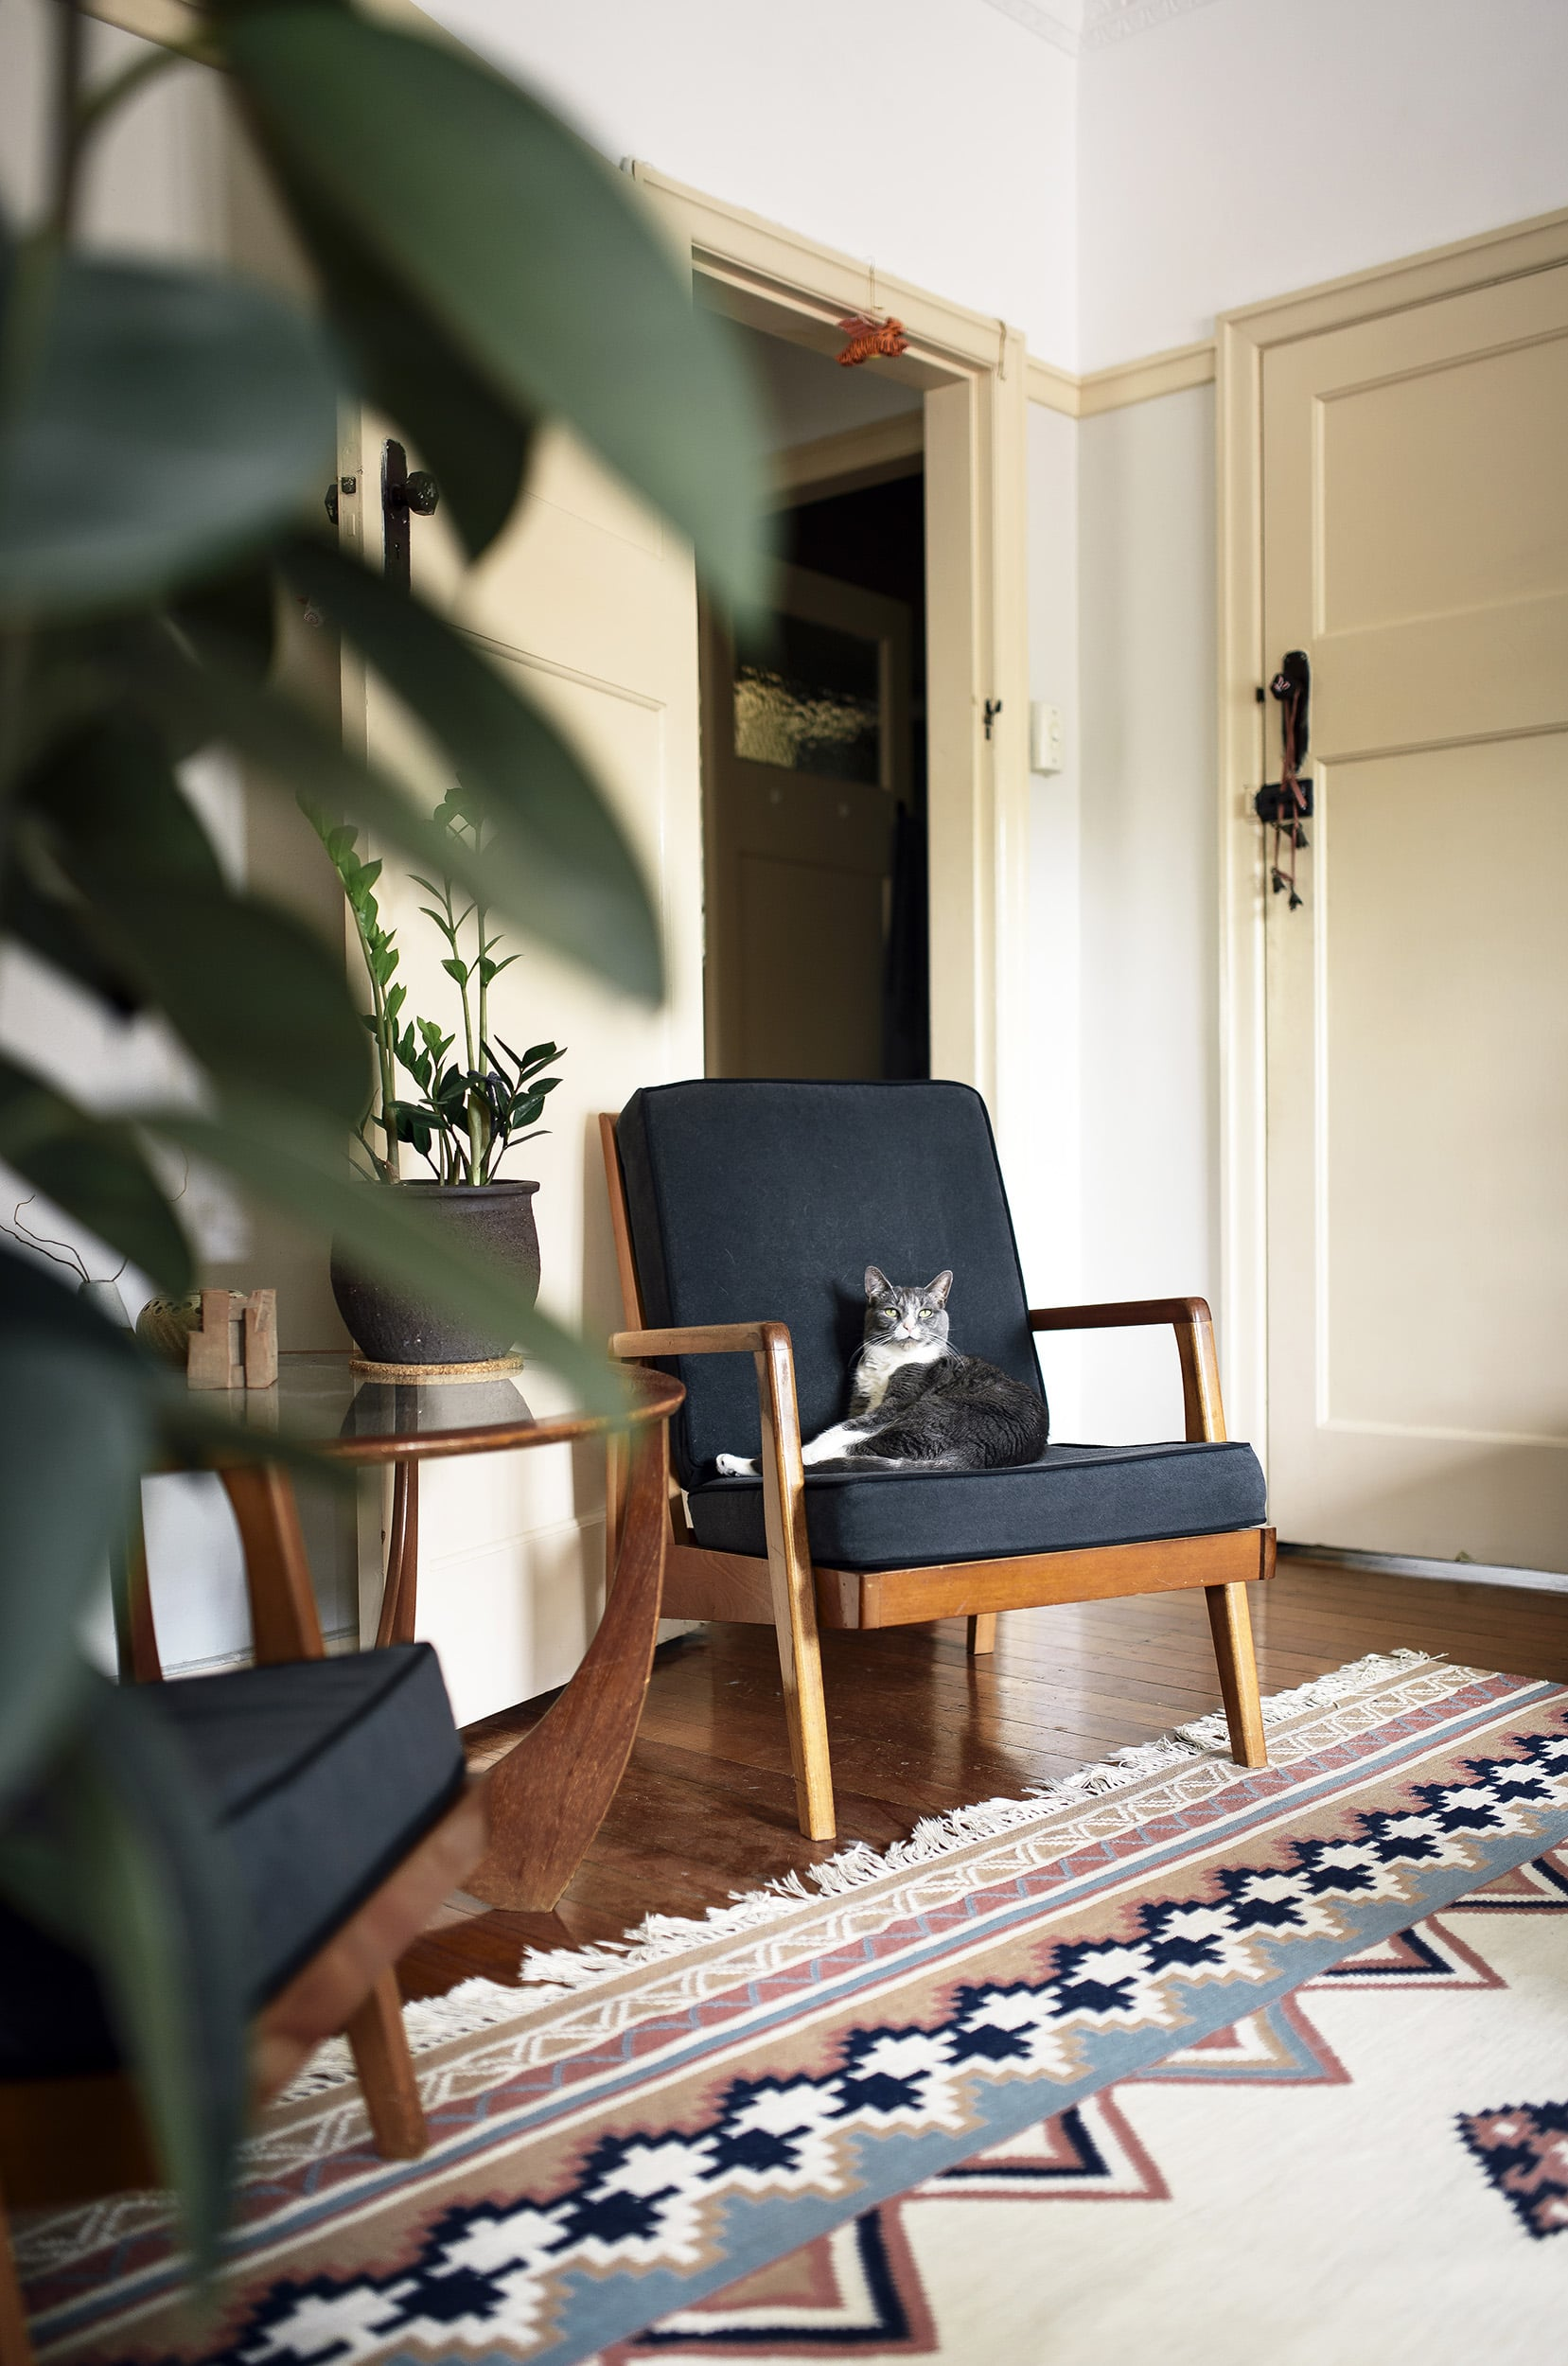 Even the cat feels at home on the lovely Danish-style